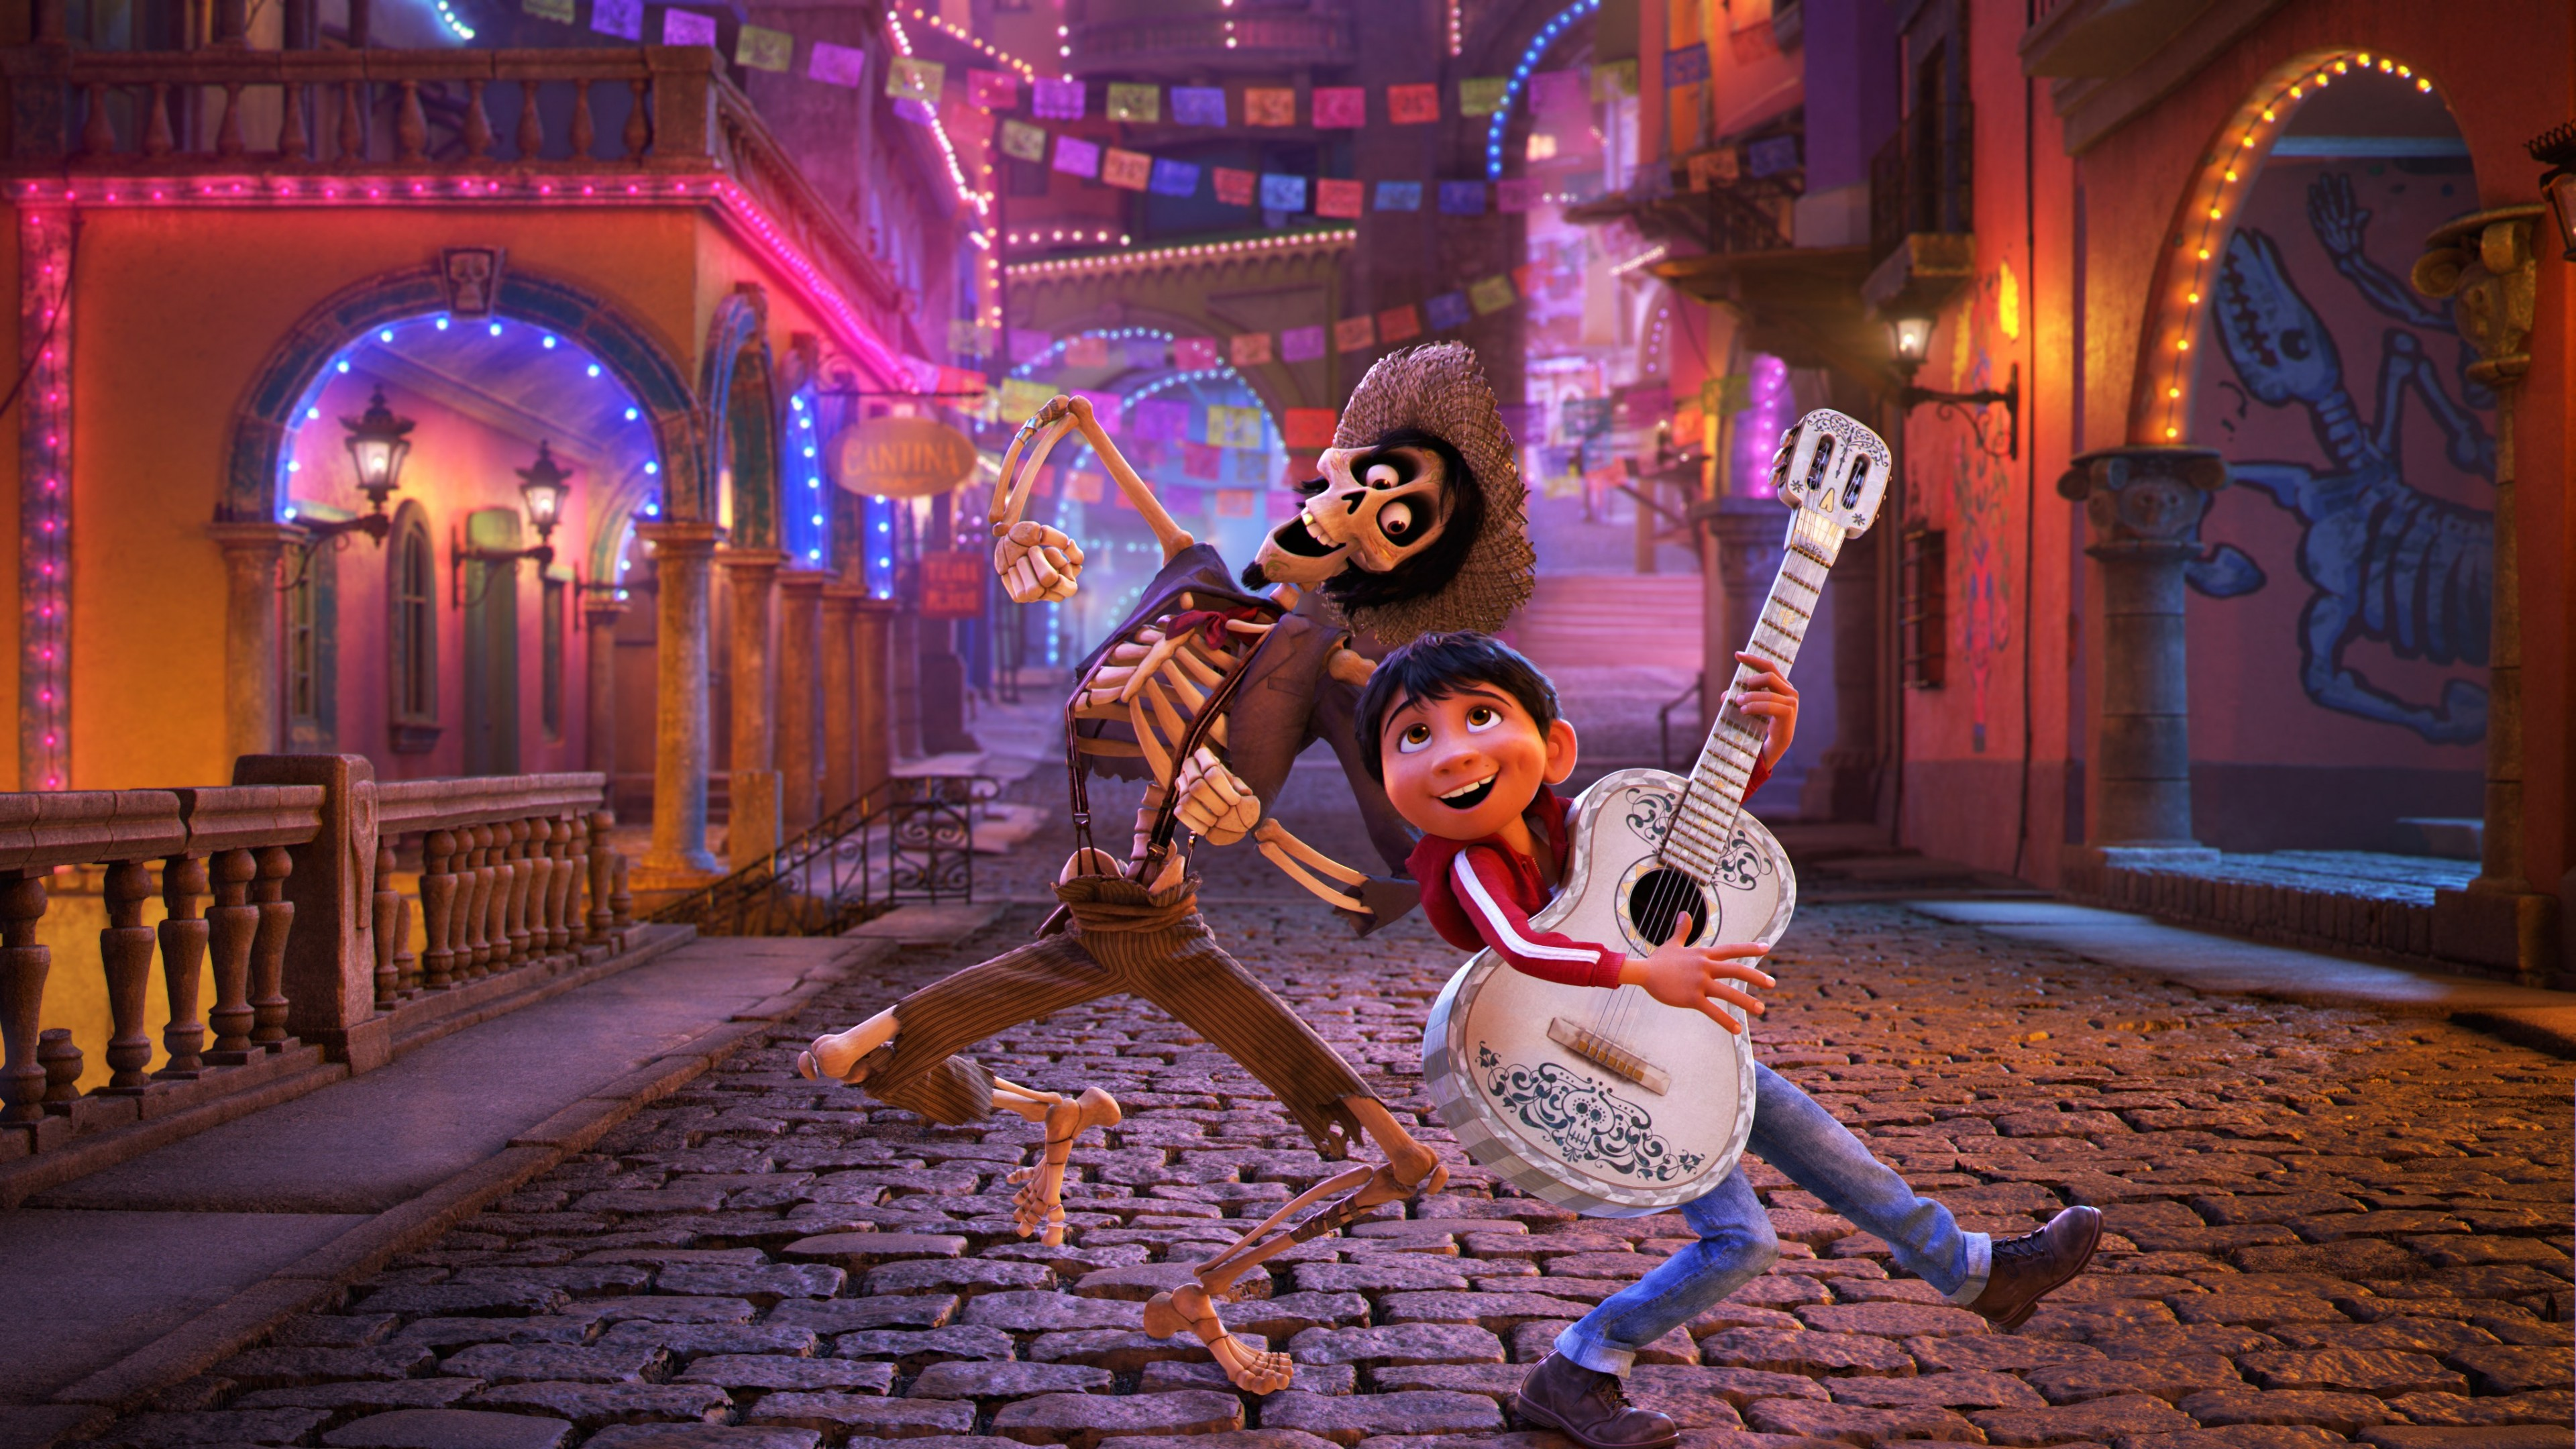 Listen to Gael García Bernal Sing on the Soundtrack of Pixar's 'Coco'